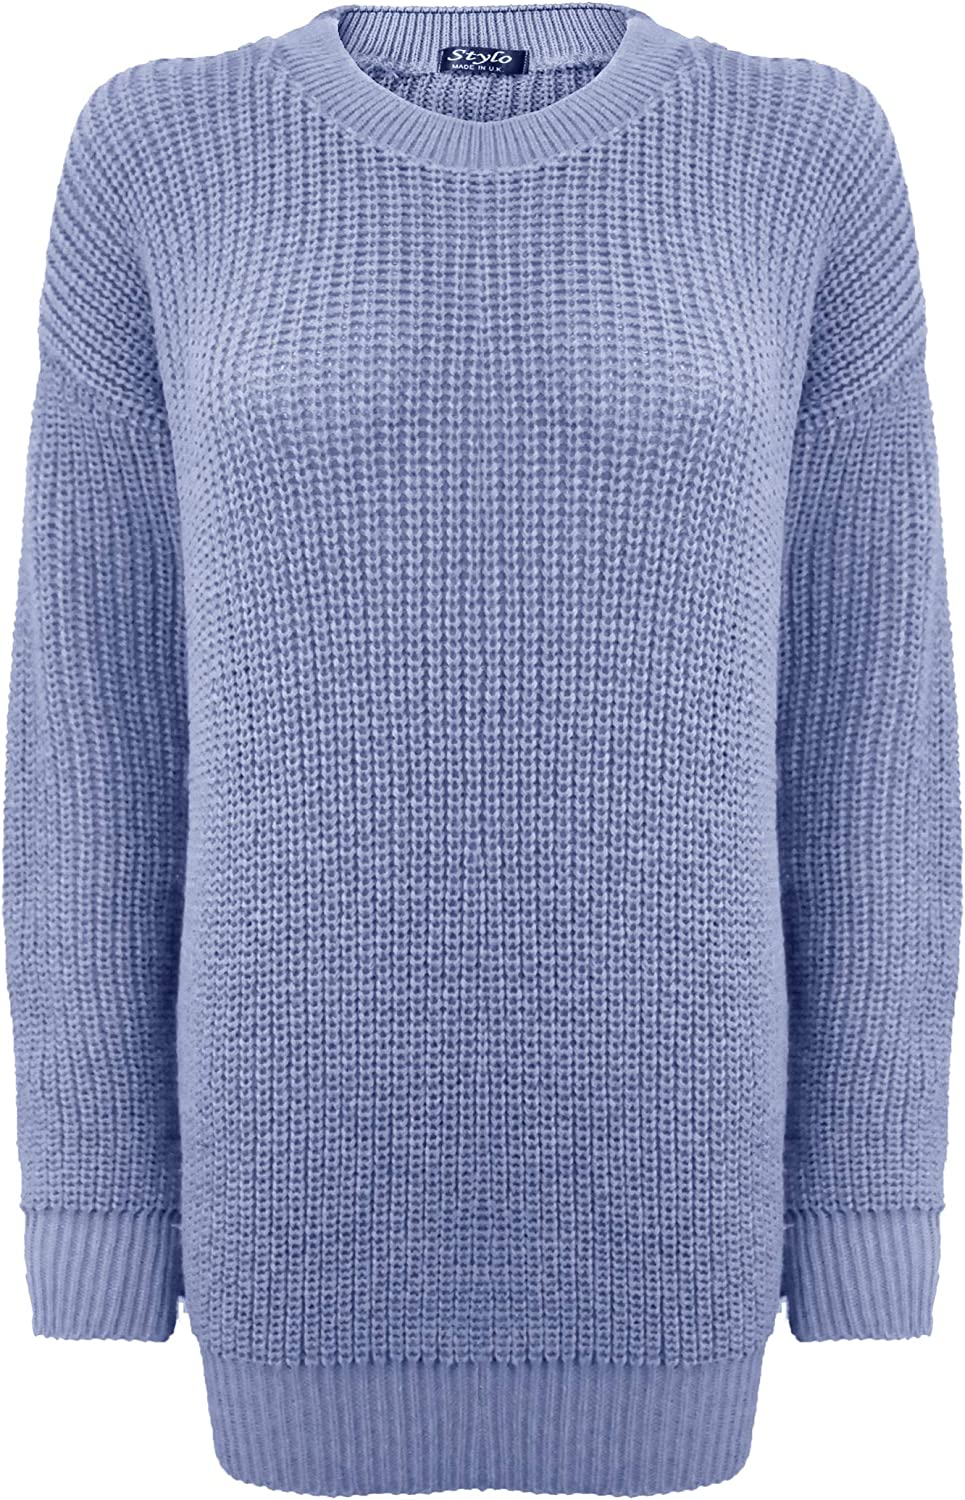 Generation Fashion Ladies New Plain Chunky Knit Loose Baggy Oversized Jumper Tops Womens Long Sleeve Knitted Smart Formal Everyday Casual Classy Lightweight Knitwear Sweater